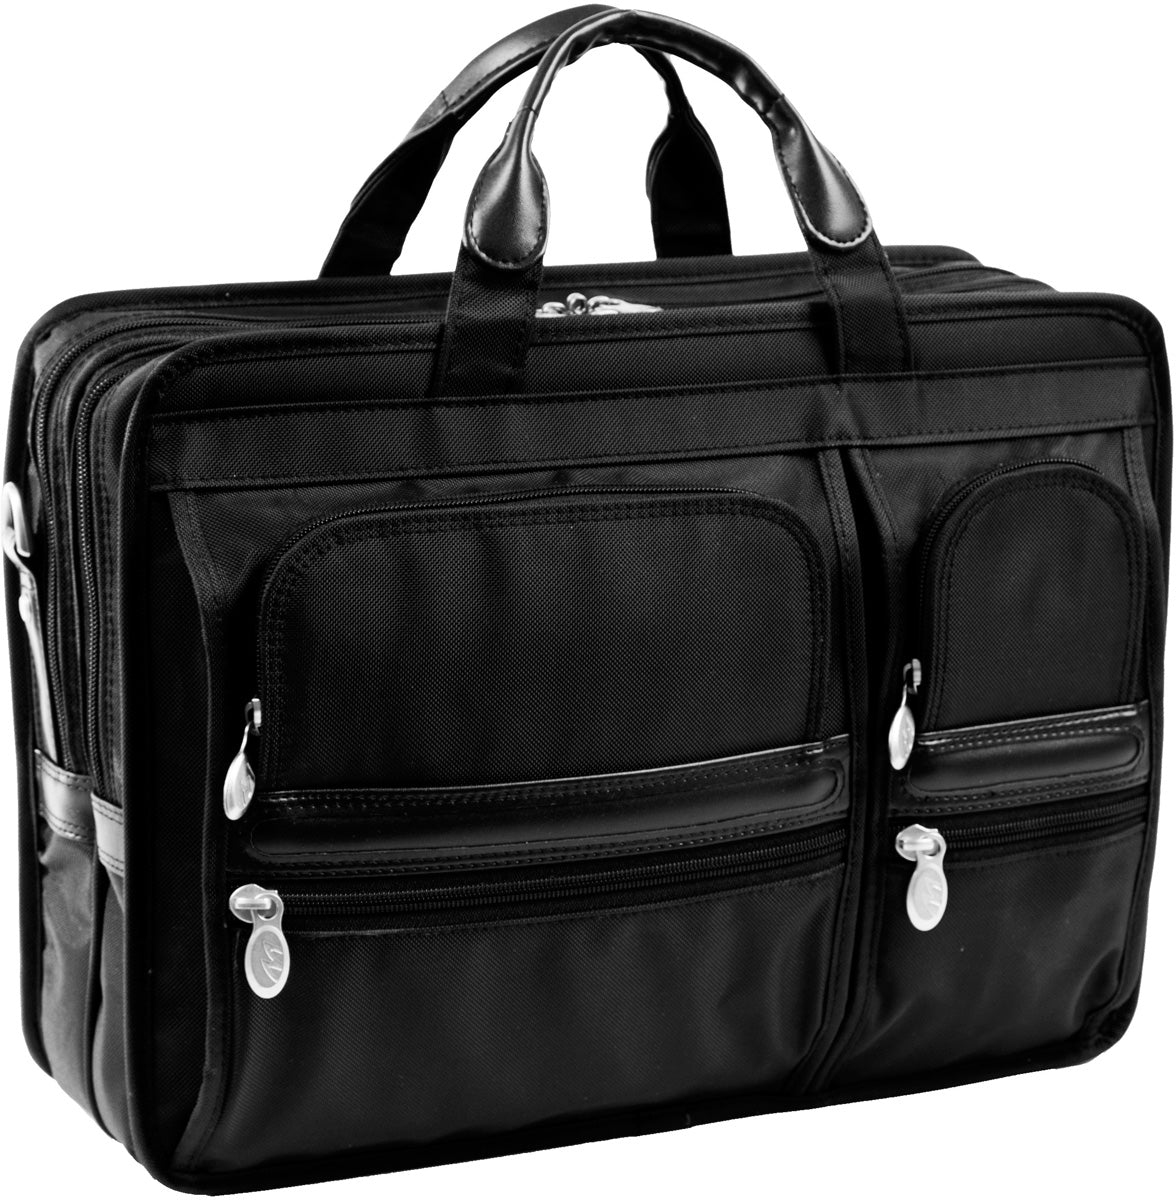 McKlein P Series Hubbard Nylon Dbl Compartment Laptop Case